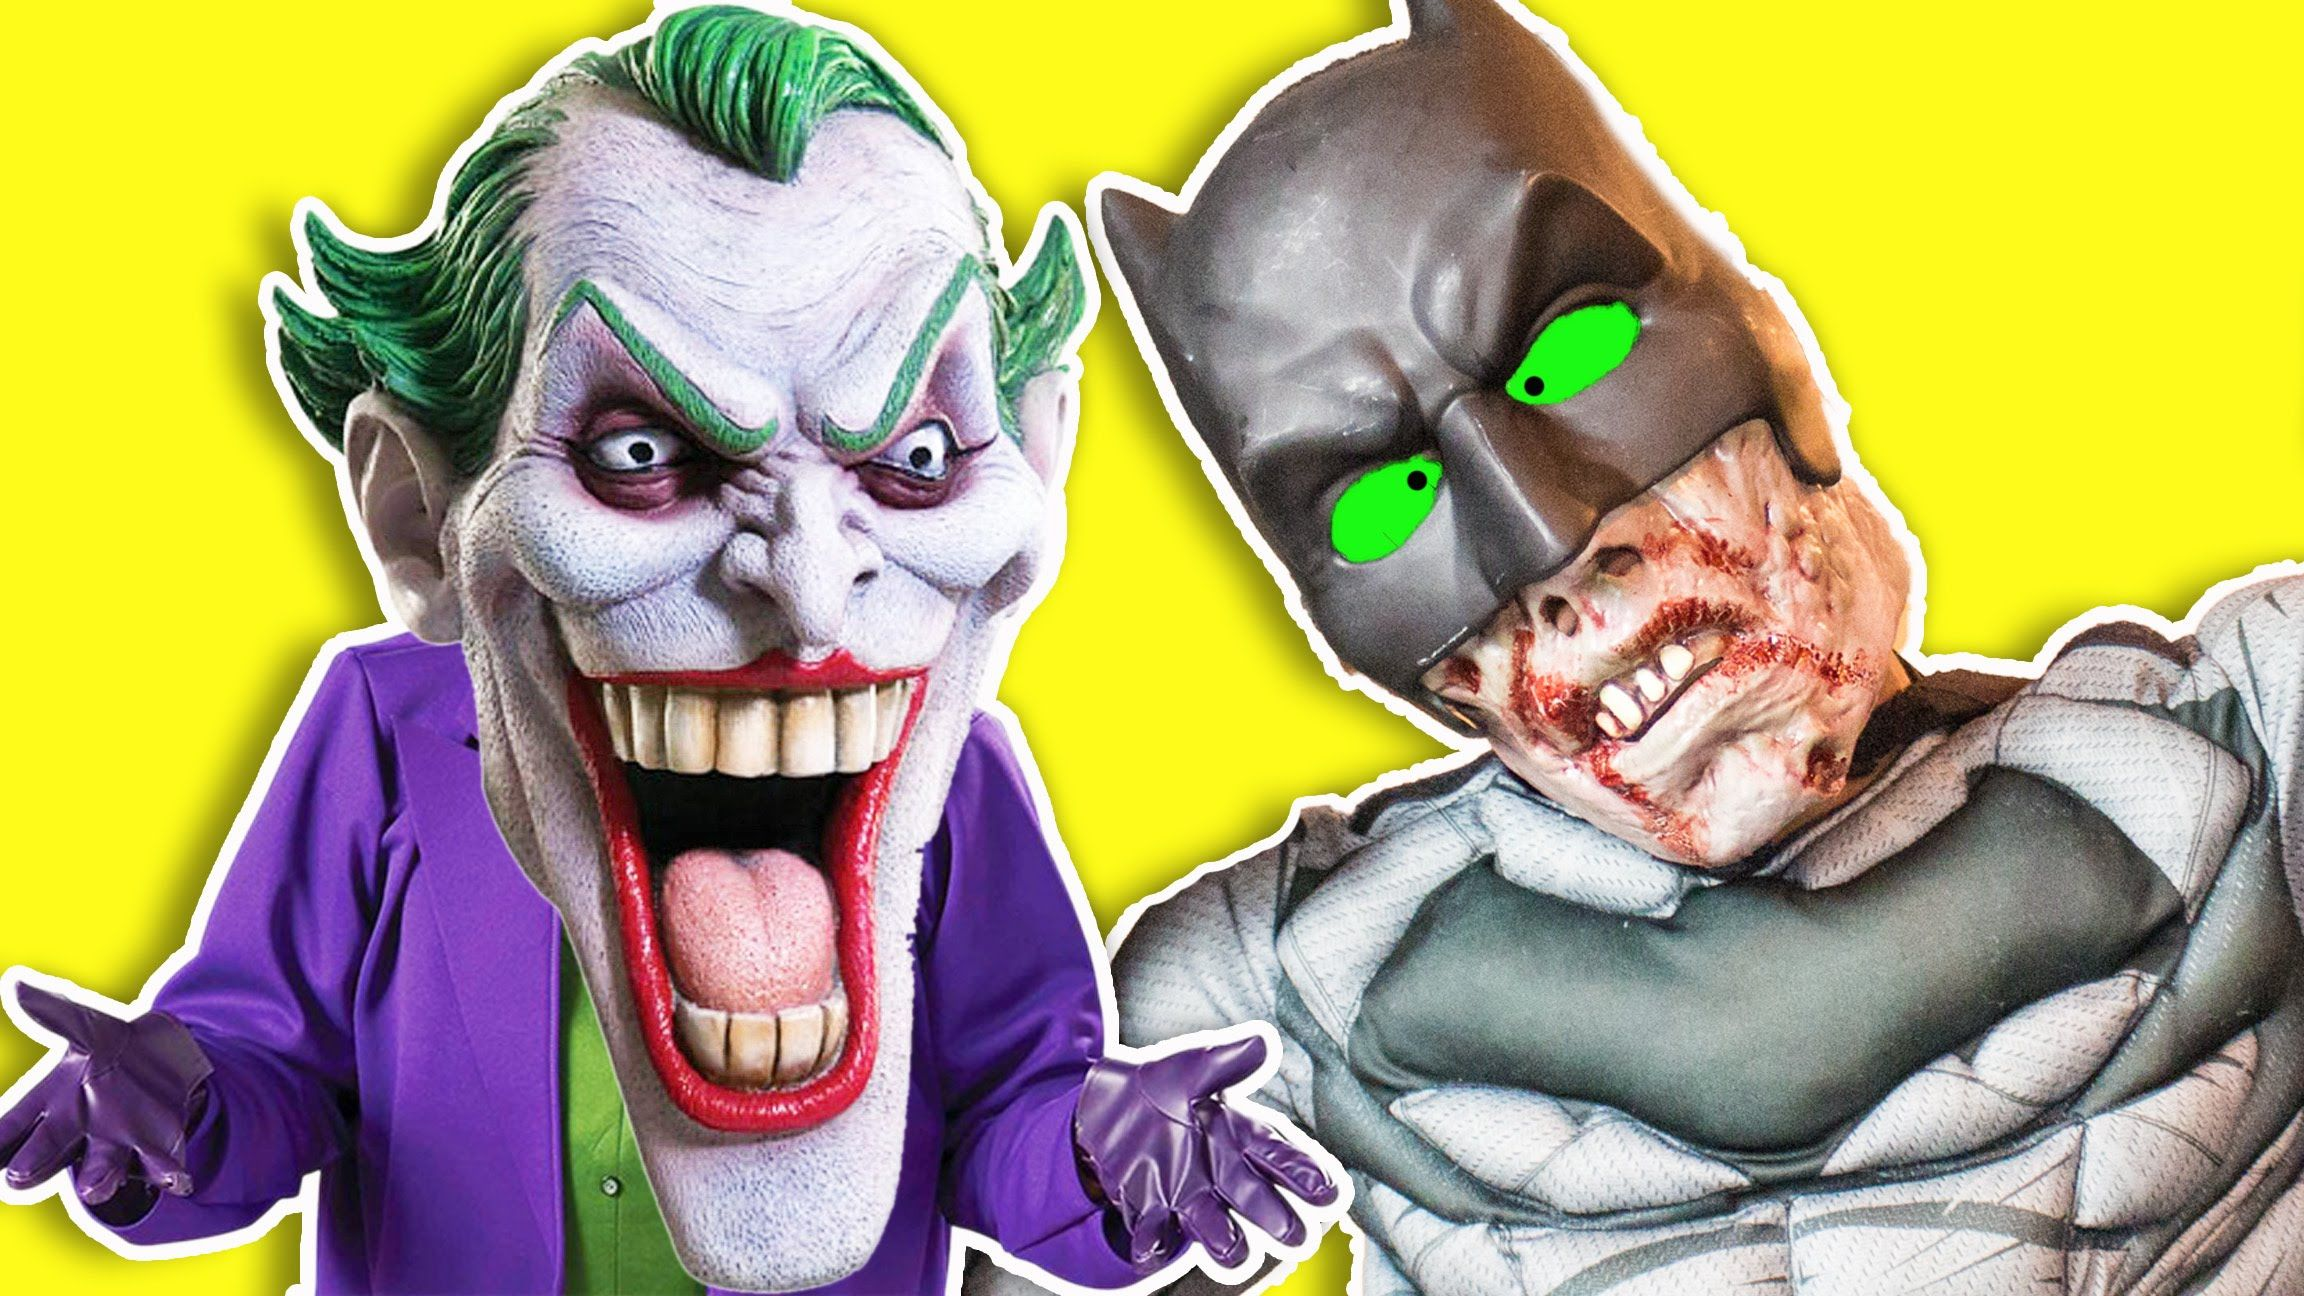 Batman Zombie Vs Superman Elsa Joker Its A Dream Toys R Us